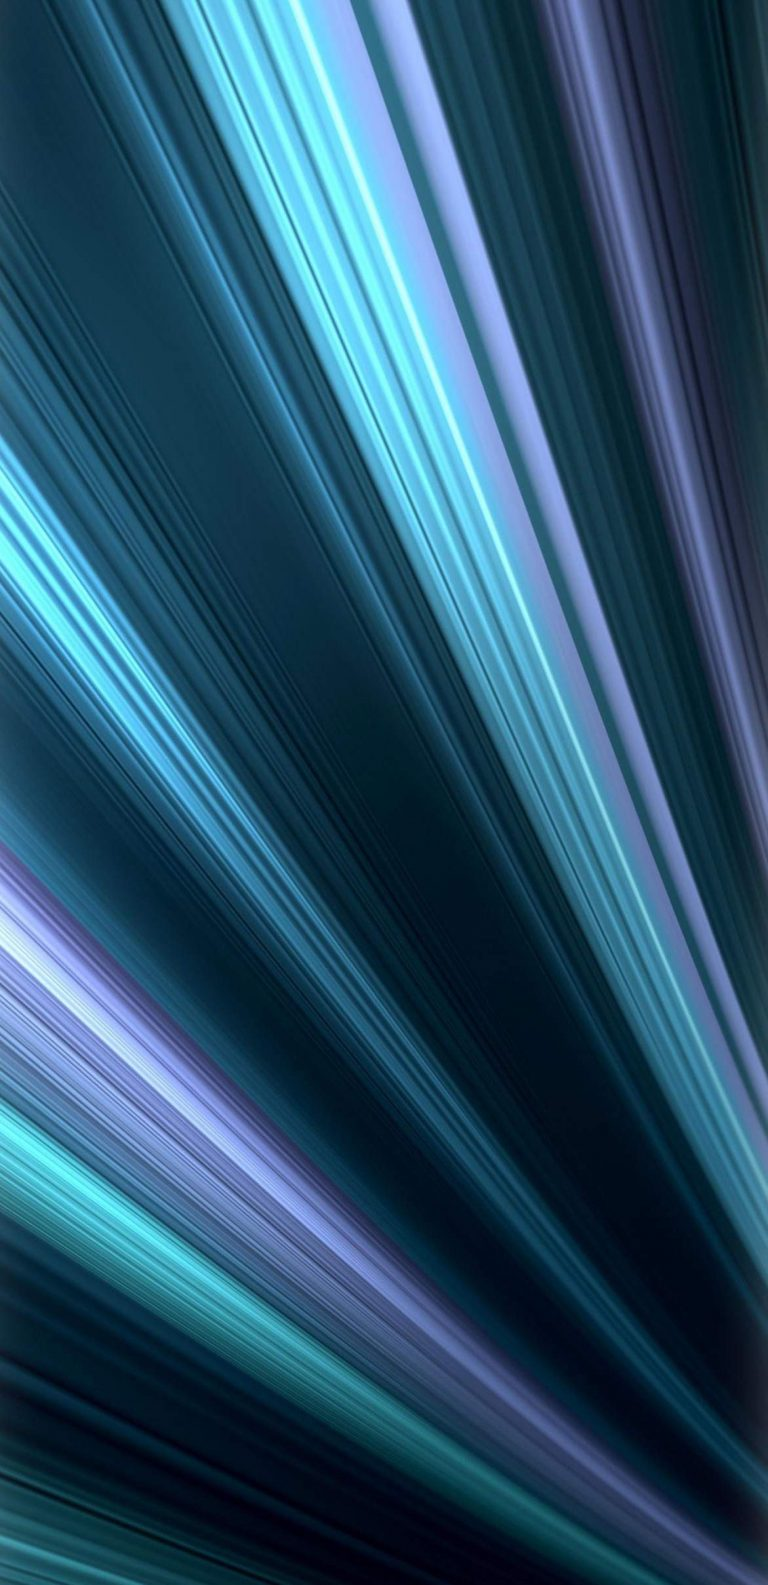 Sony Xperia XZ3 Stock Wallpaper 03 1171x2417 768x1585